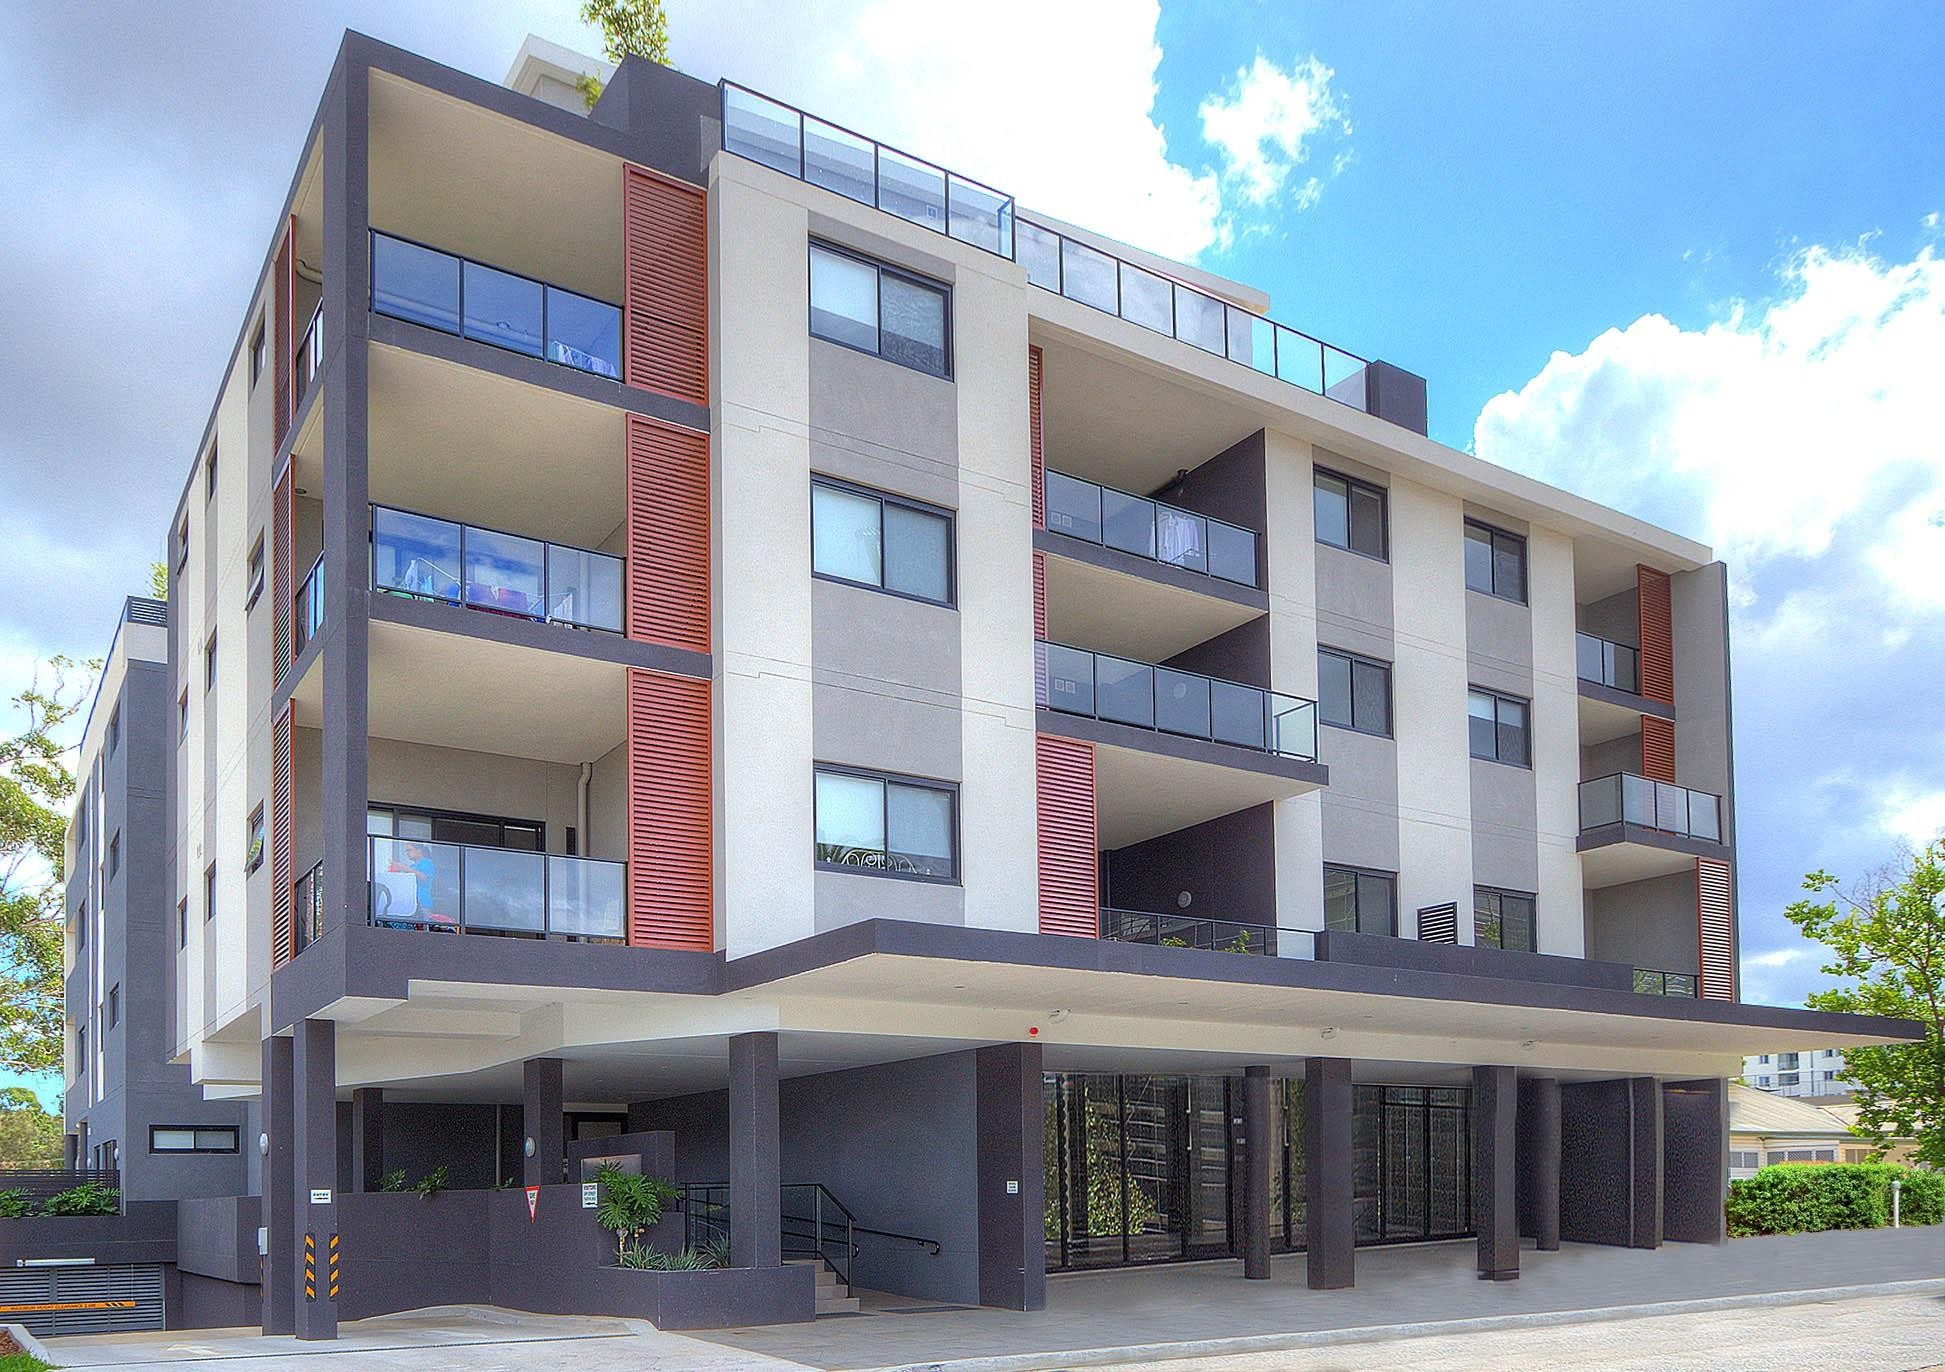 Must be Sold! Prices Slashed $20,000! Best Brand New Apartments